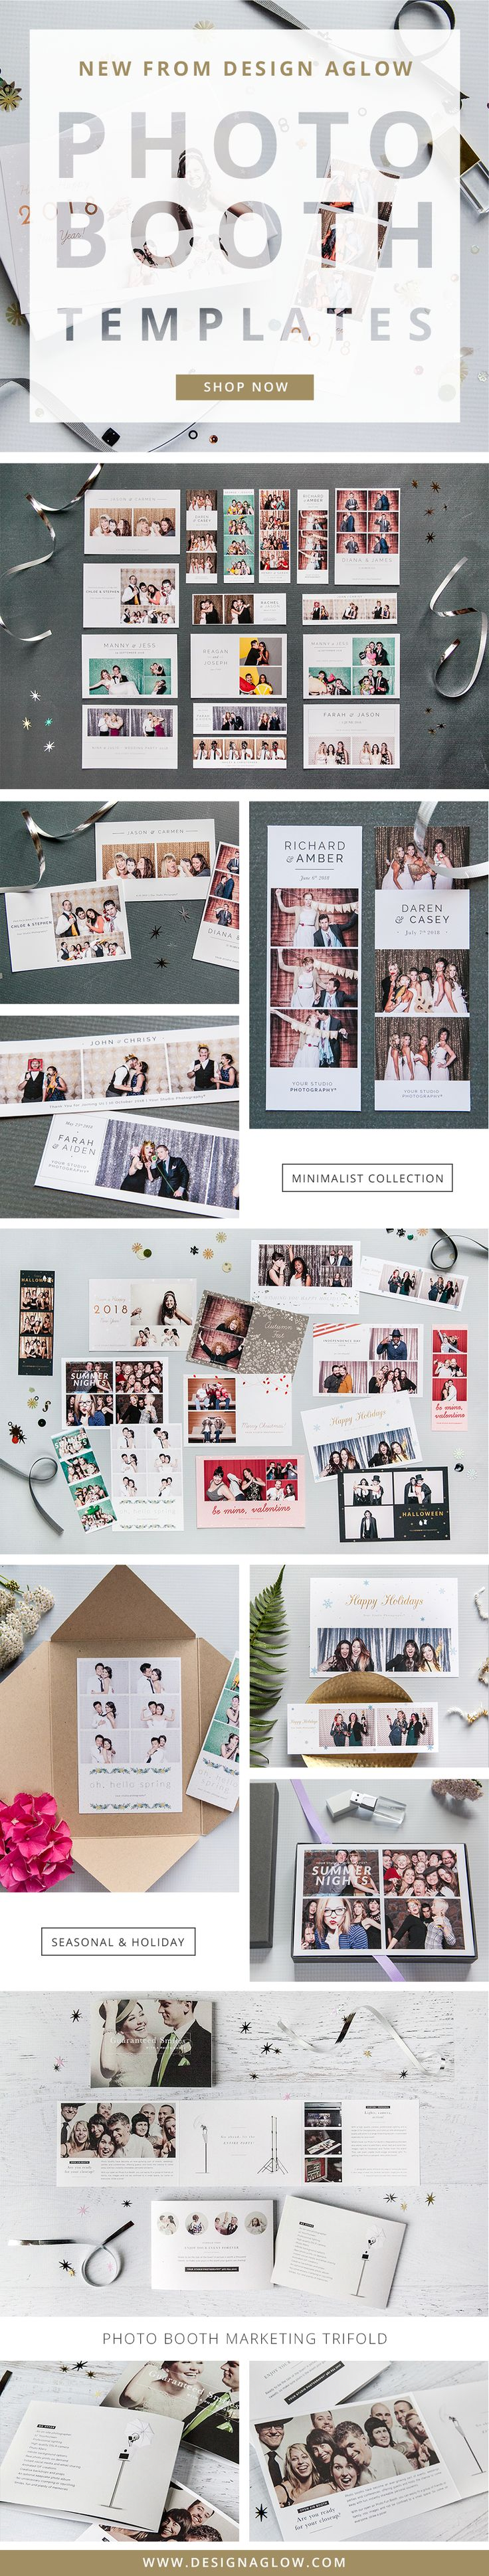 Send guests home with a branded takeaway from every event with these fabulously shareable photo booth templates.